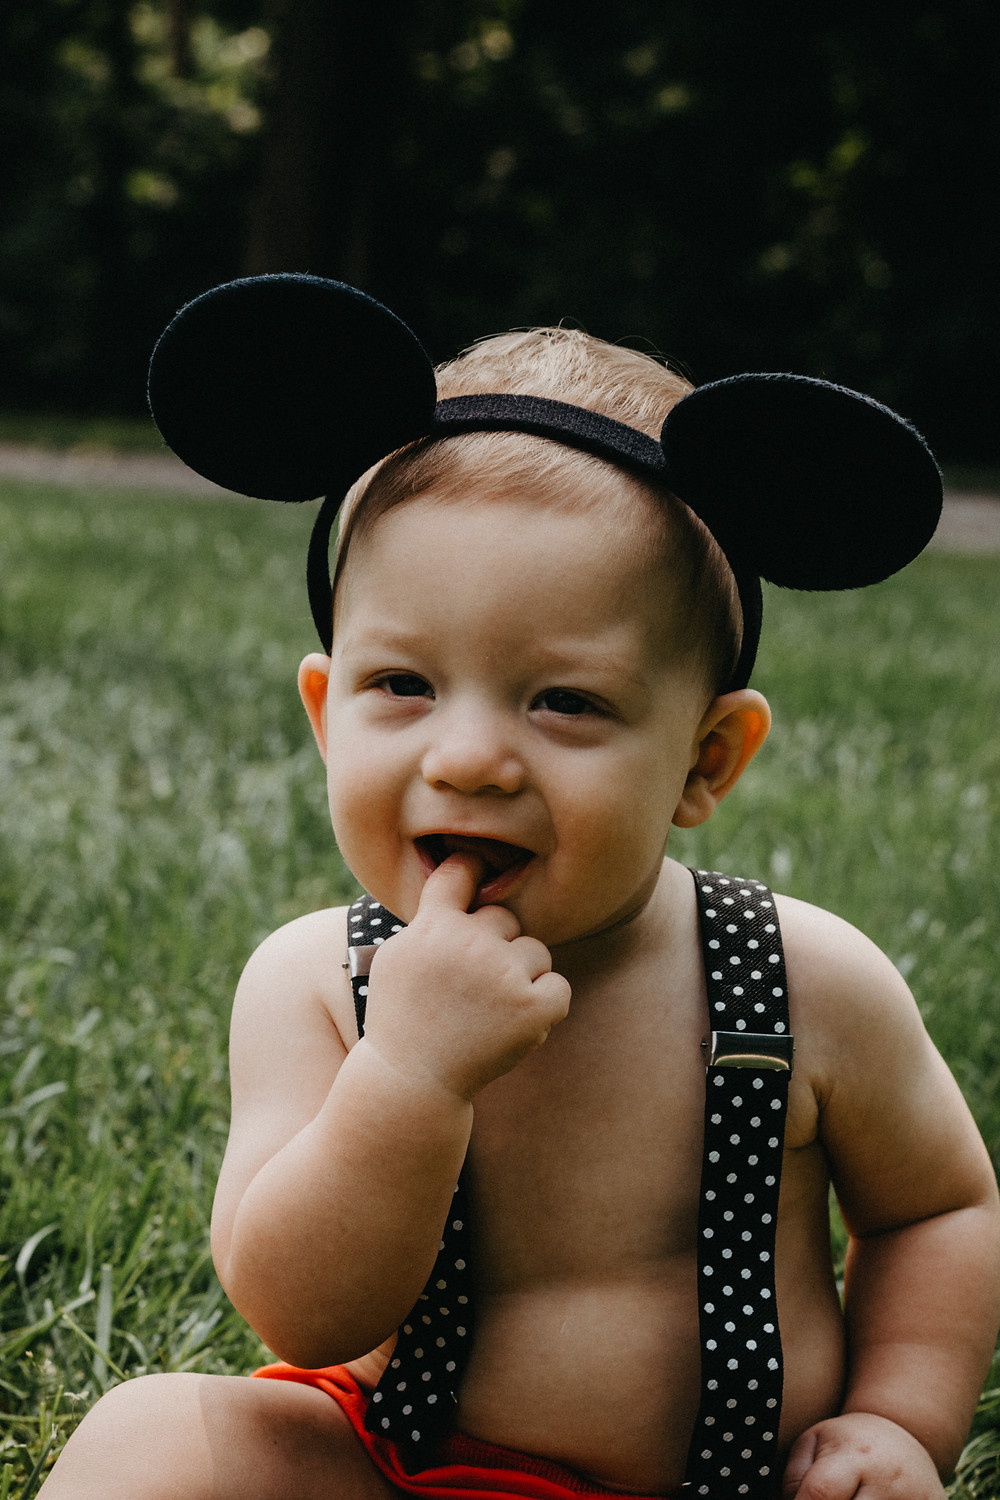 Mickey Mouse themed Cake Smash Session in York, PA by Taylor Slusser Photography